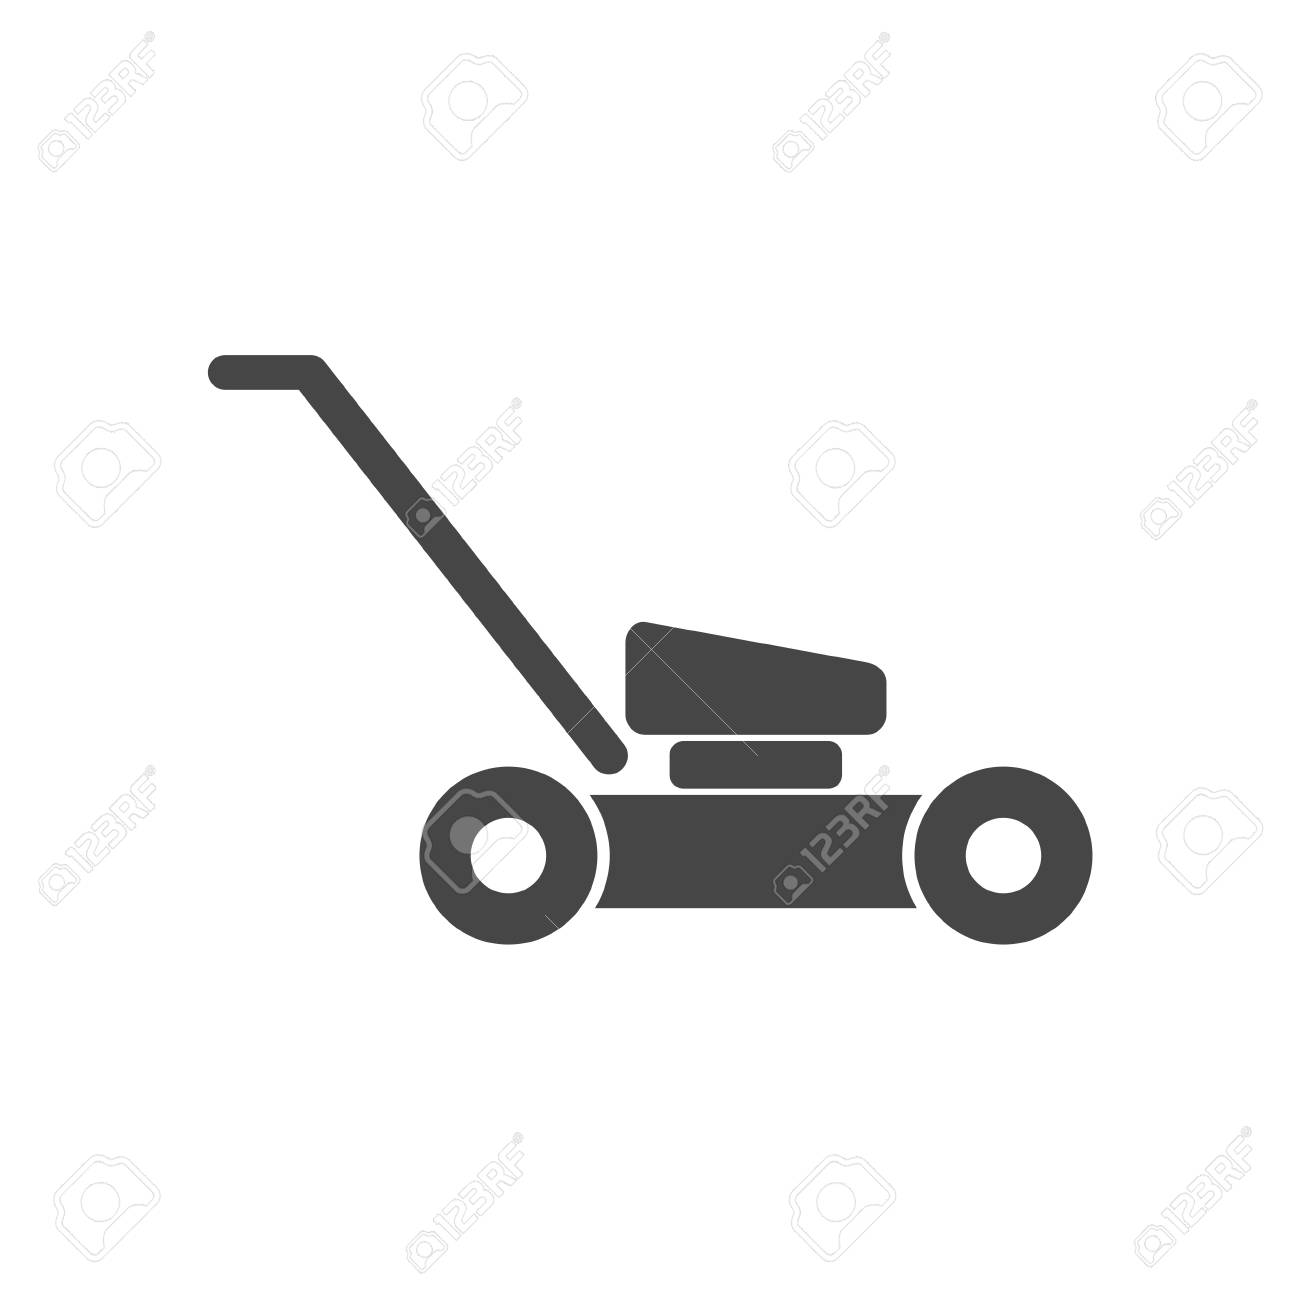 Lawn mower in black silhouette isolated vector illustration.